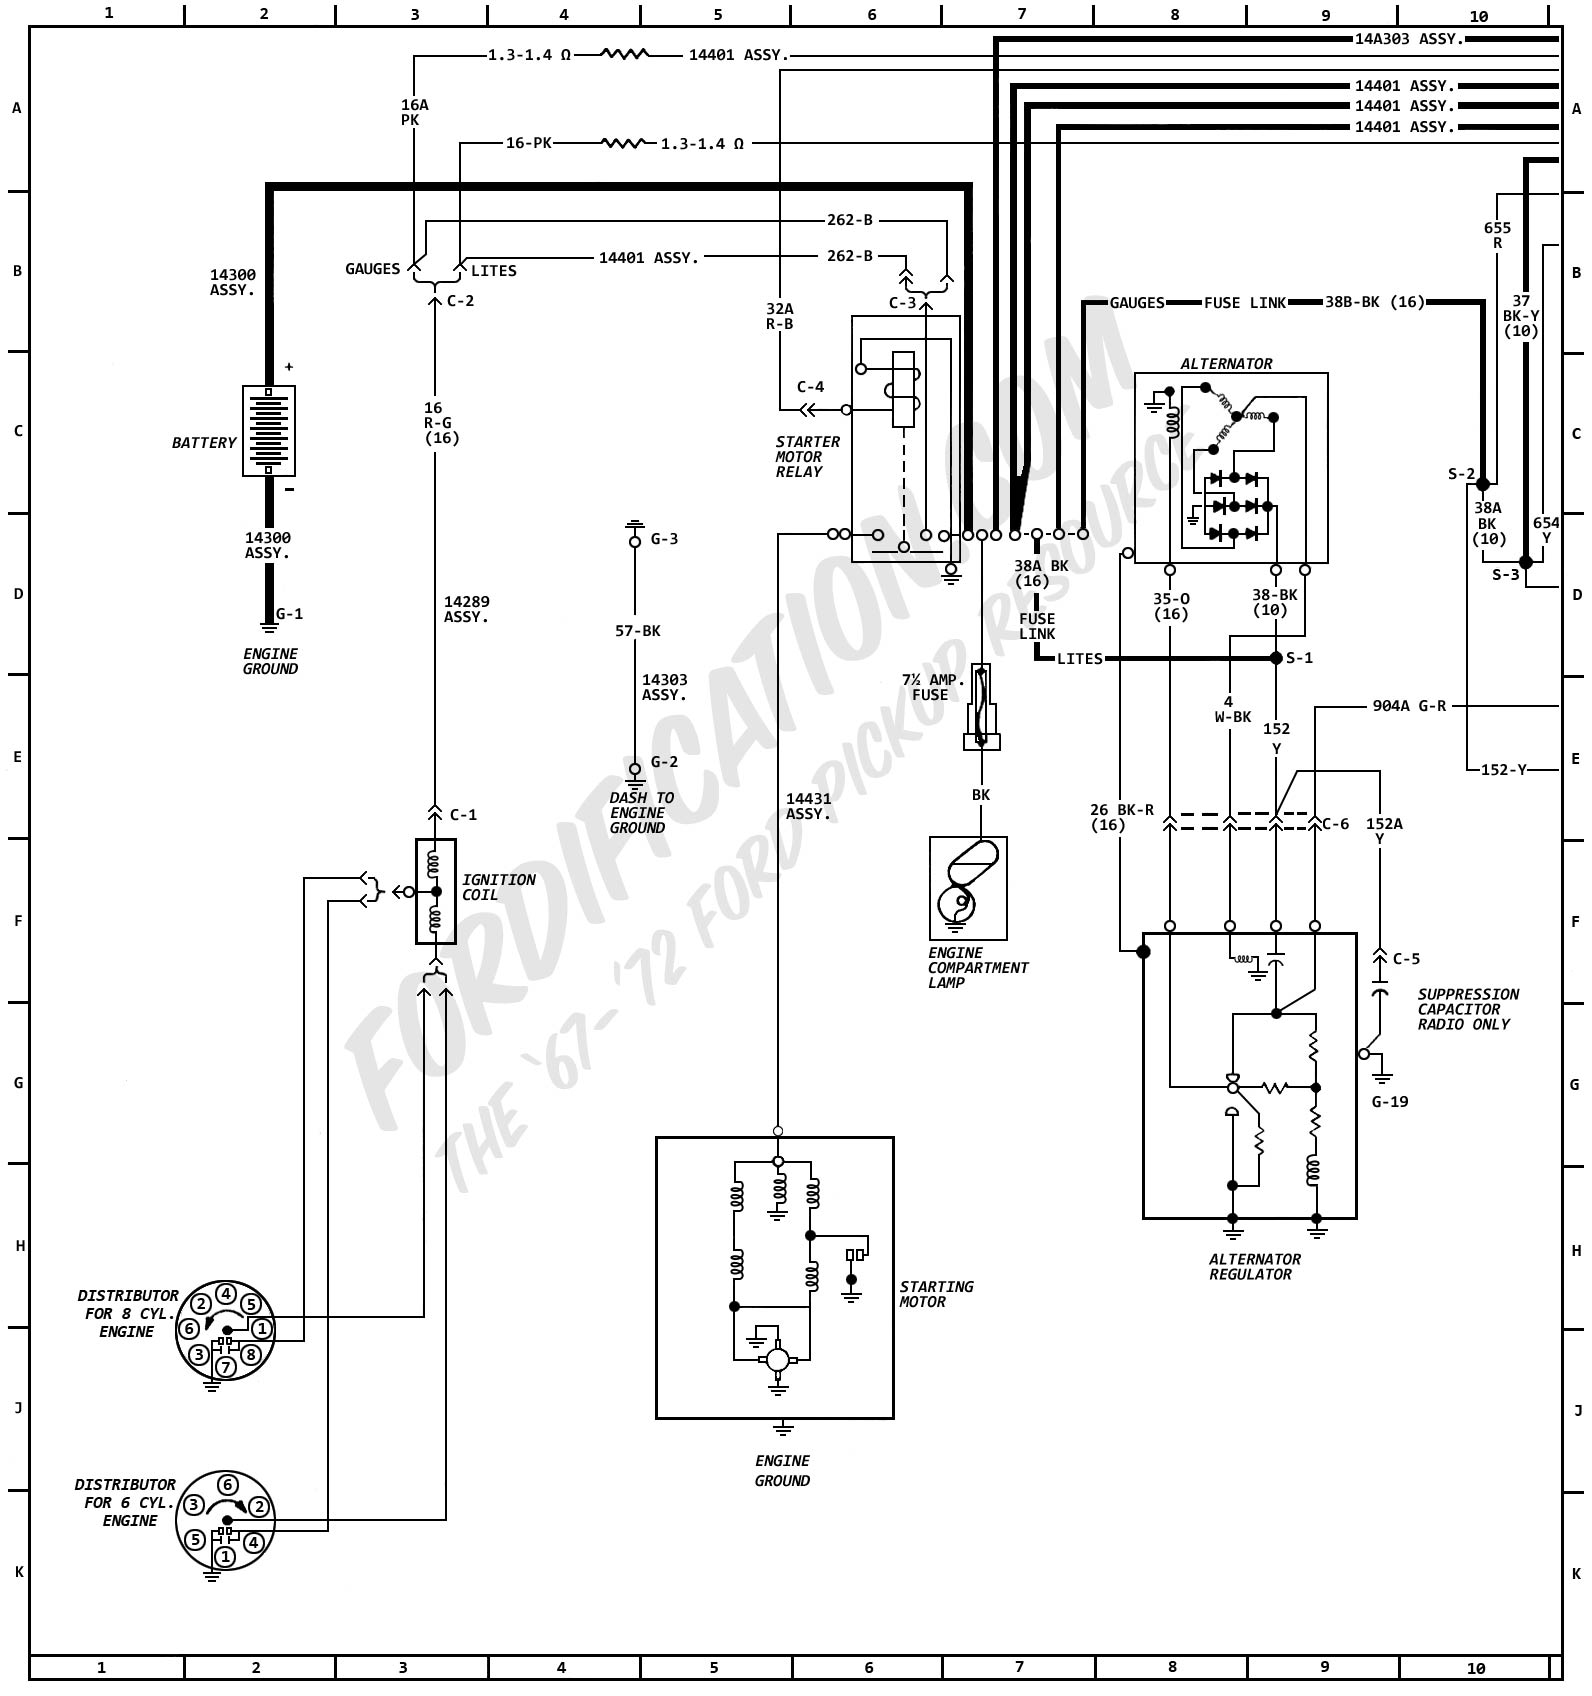 Wiring 1972master: 1986 Mustang Headlight Switch Wiring Diagram At Nayabfun.com